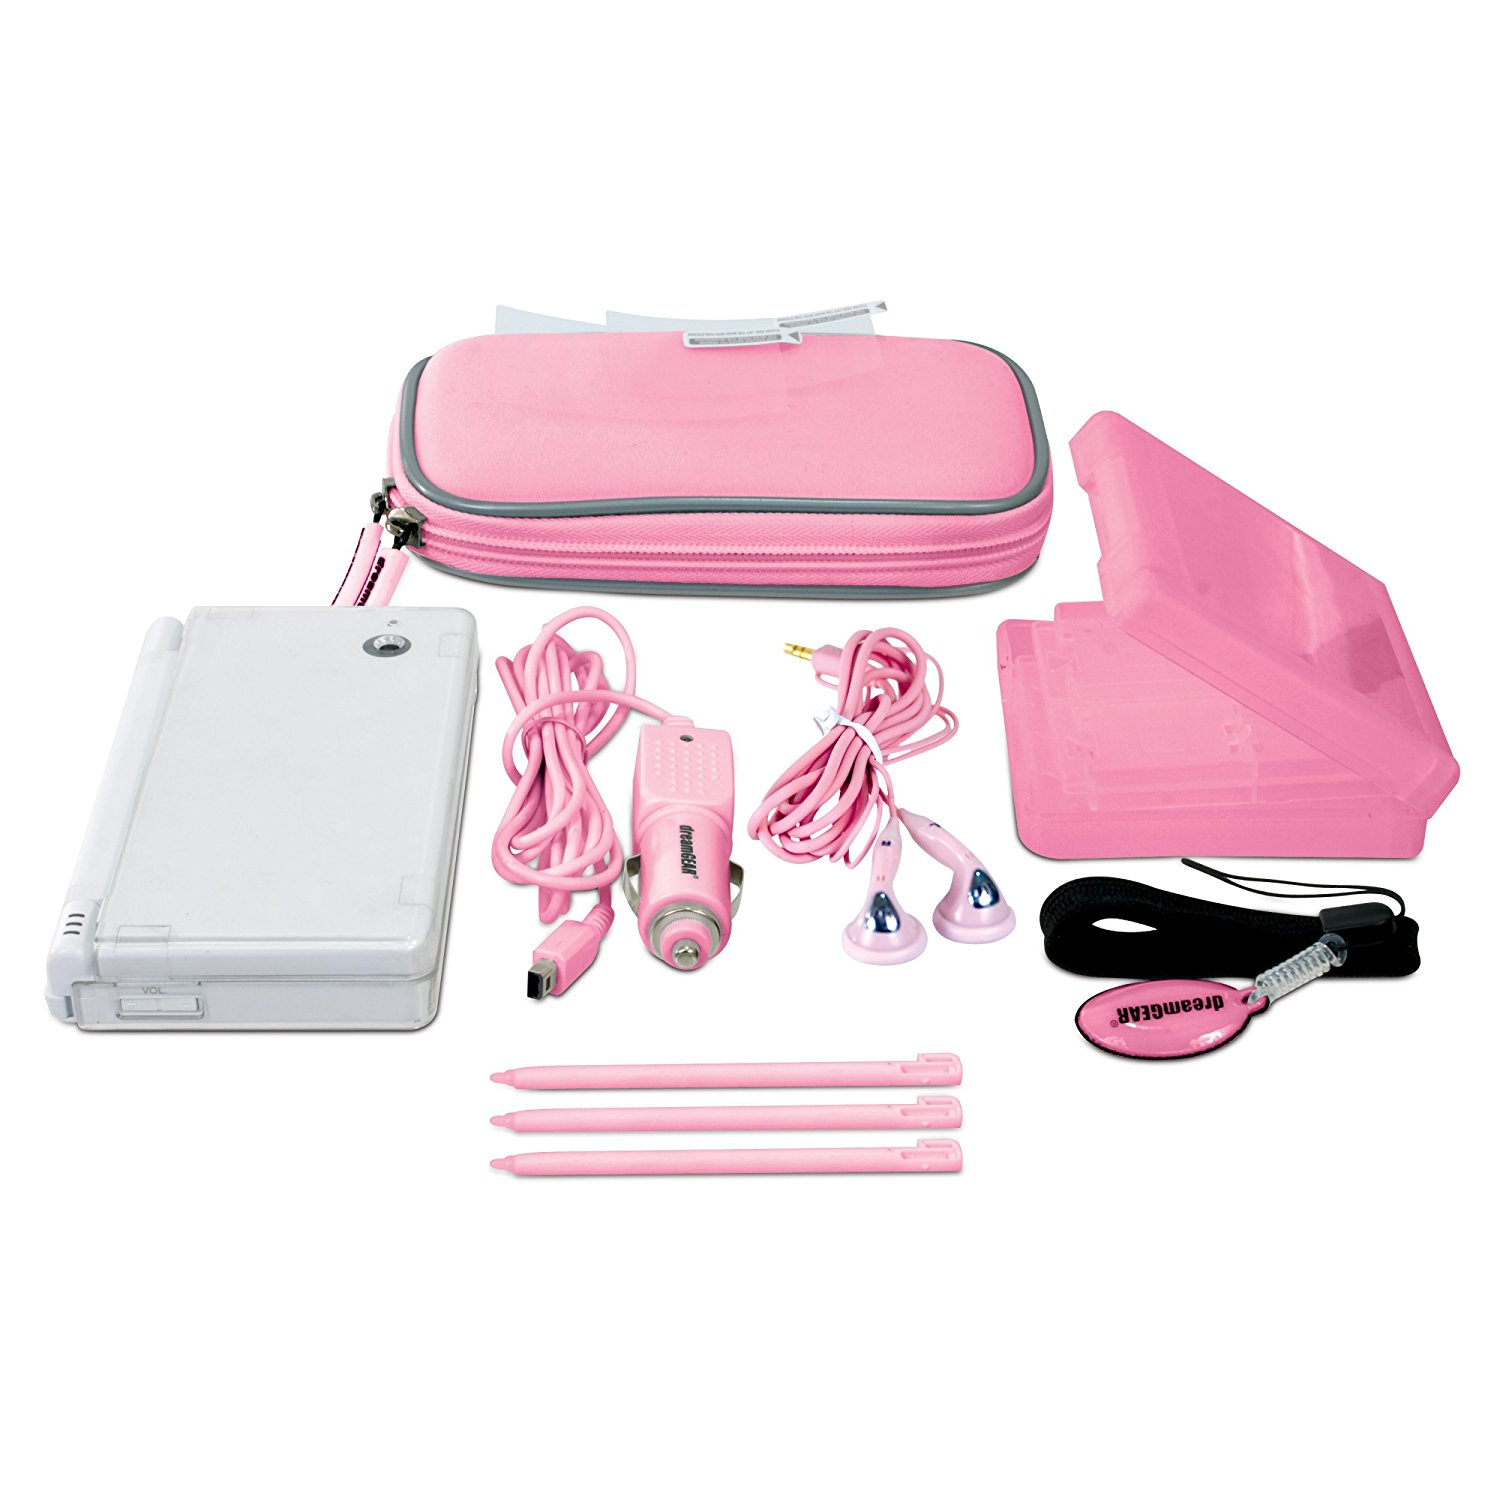 DSi 10-in-1 Starter Kit Pink by DreamGear